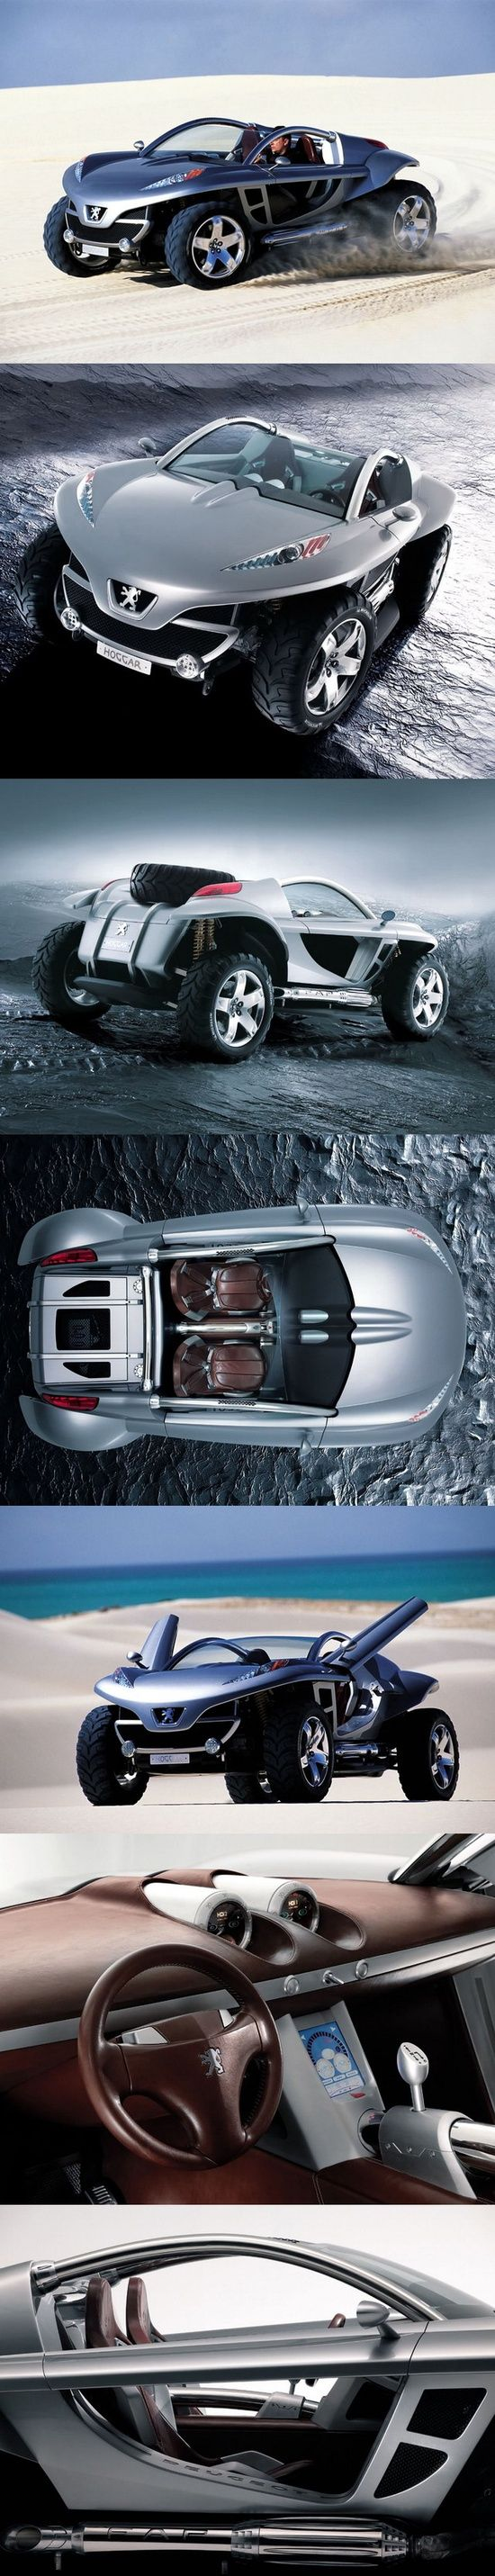 ? Peugeot Hoggar Concept car (2003) original from